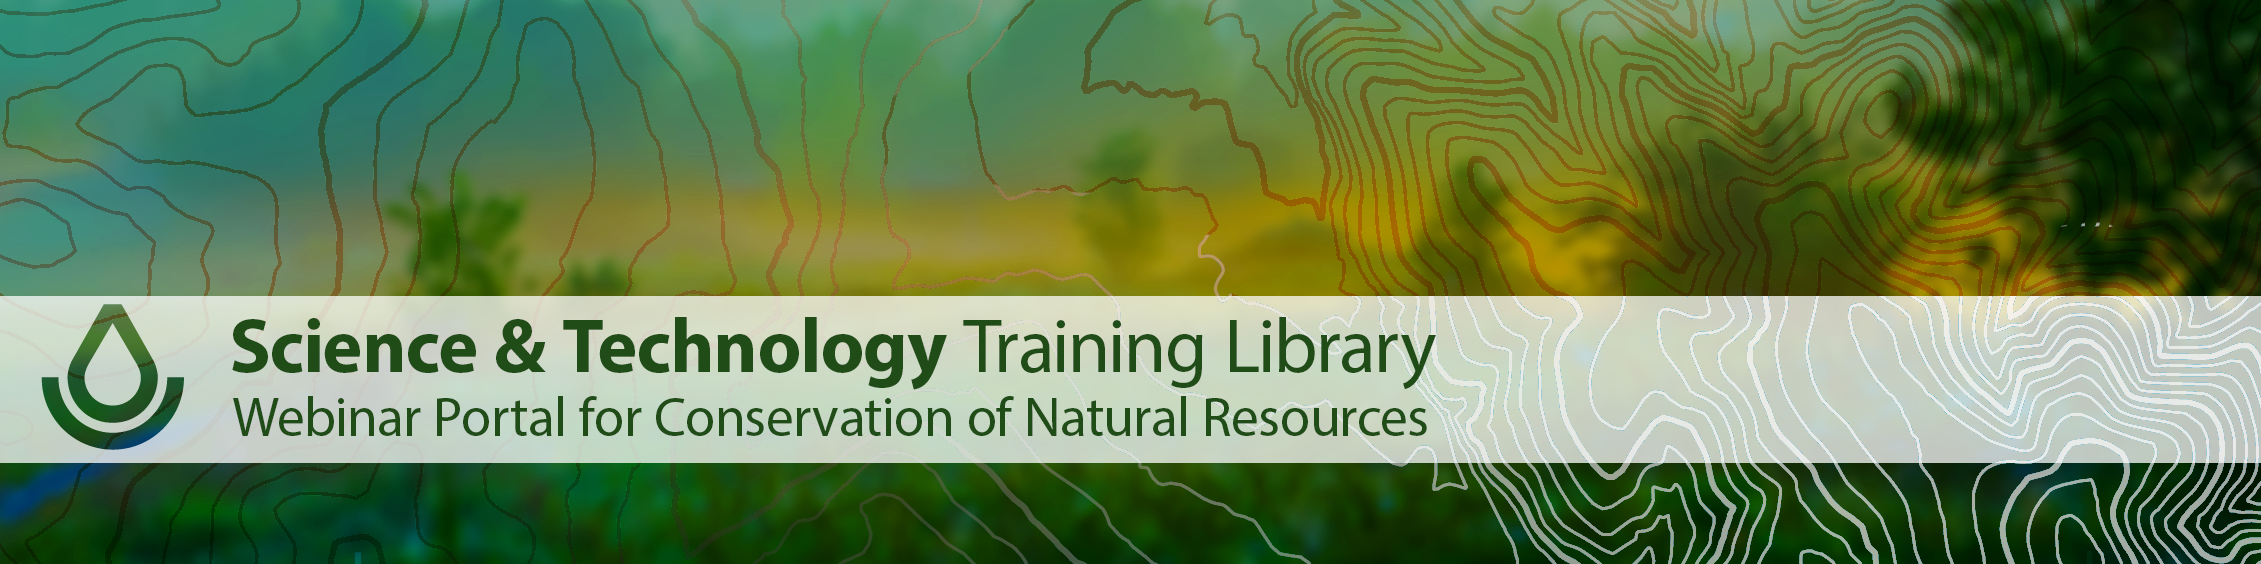 Science and Technology Training Library Webinar Portal for Conservation of Natural Resources